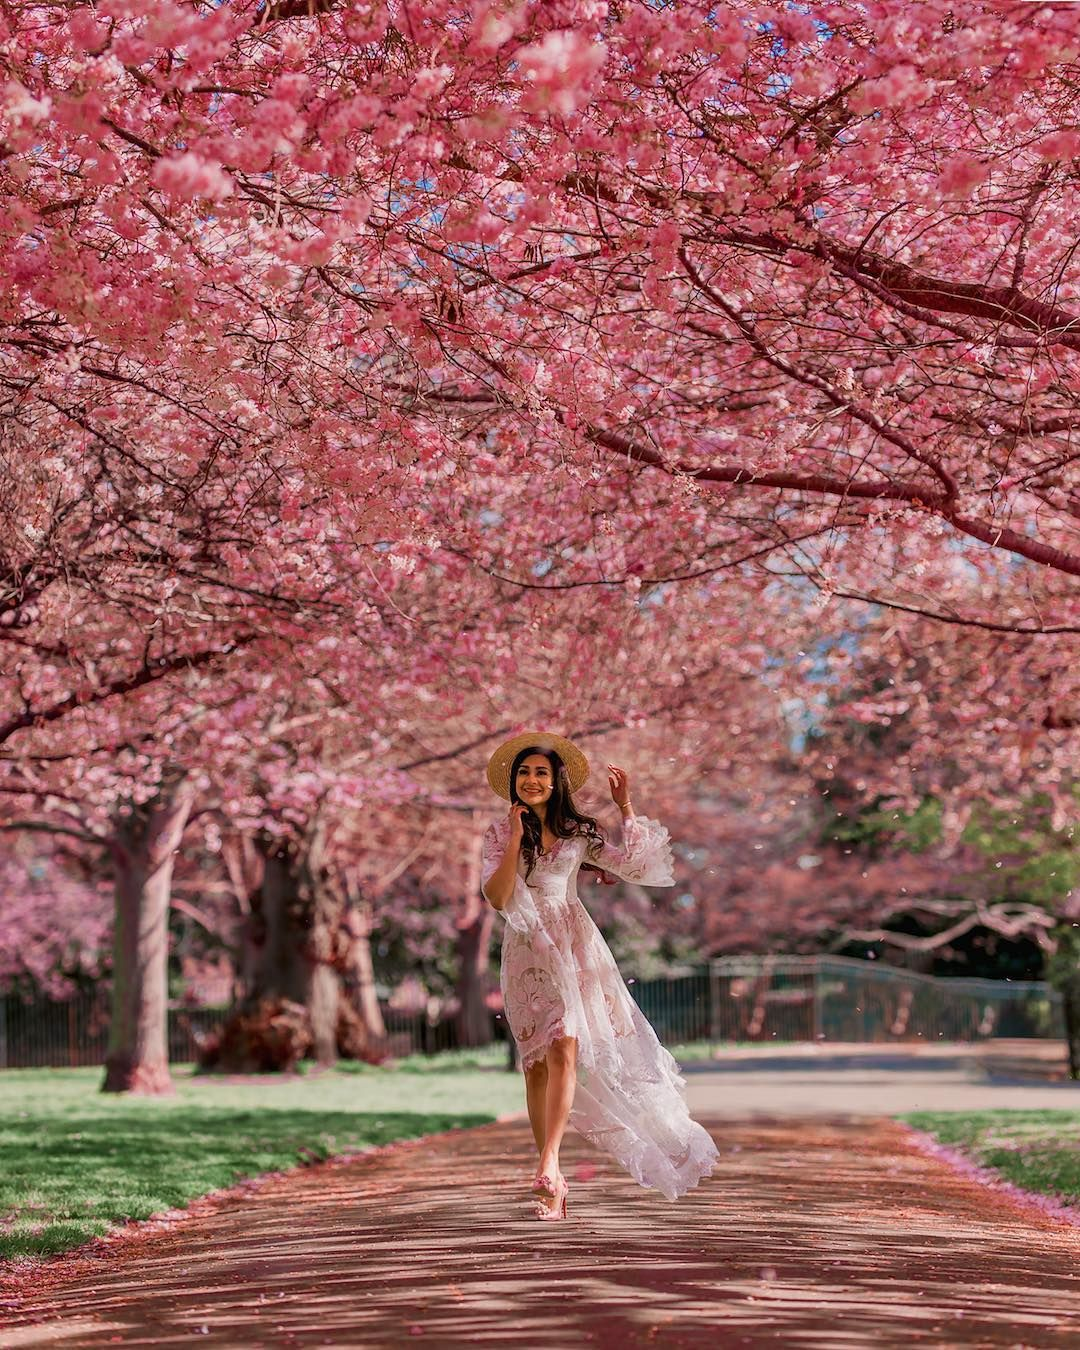 Cassie Cassiesamji London Is In Bloom Spring In London Is The Most Beautiful Time I Love These Perfect Pink Blo Pink Blossom Blossom Floating Flowers